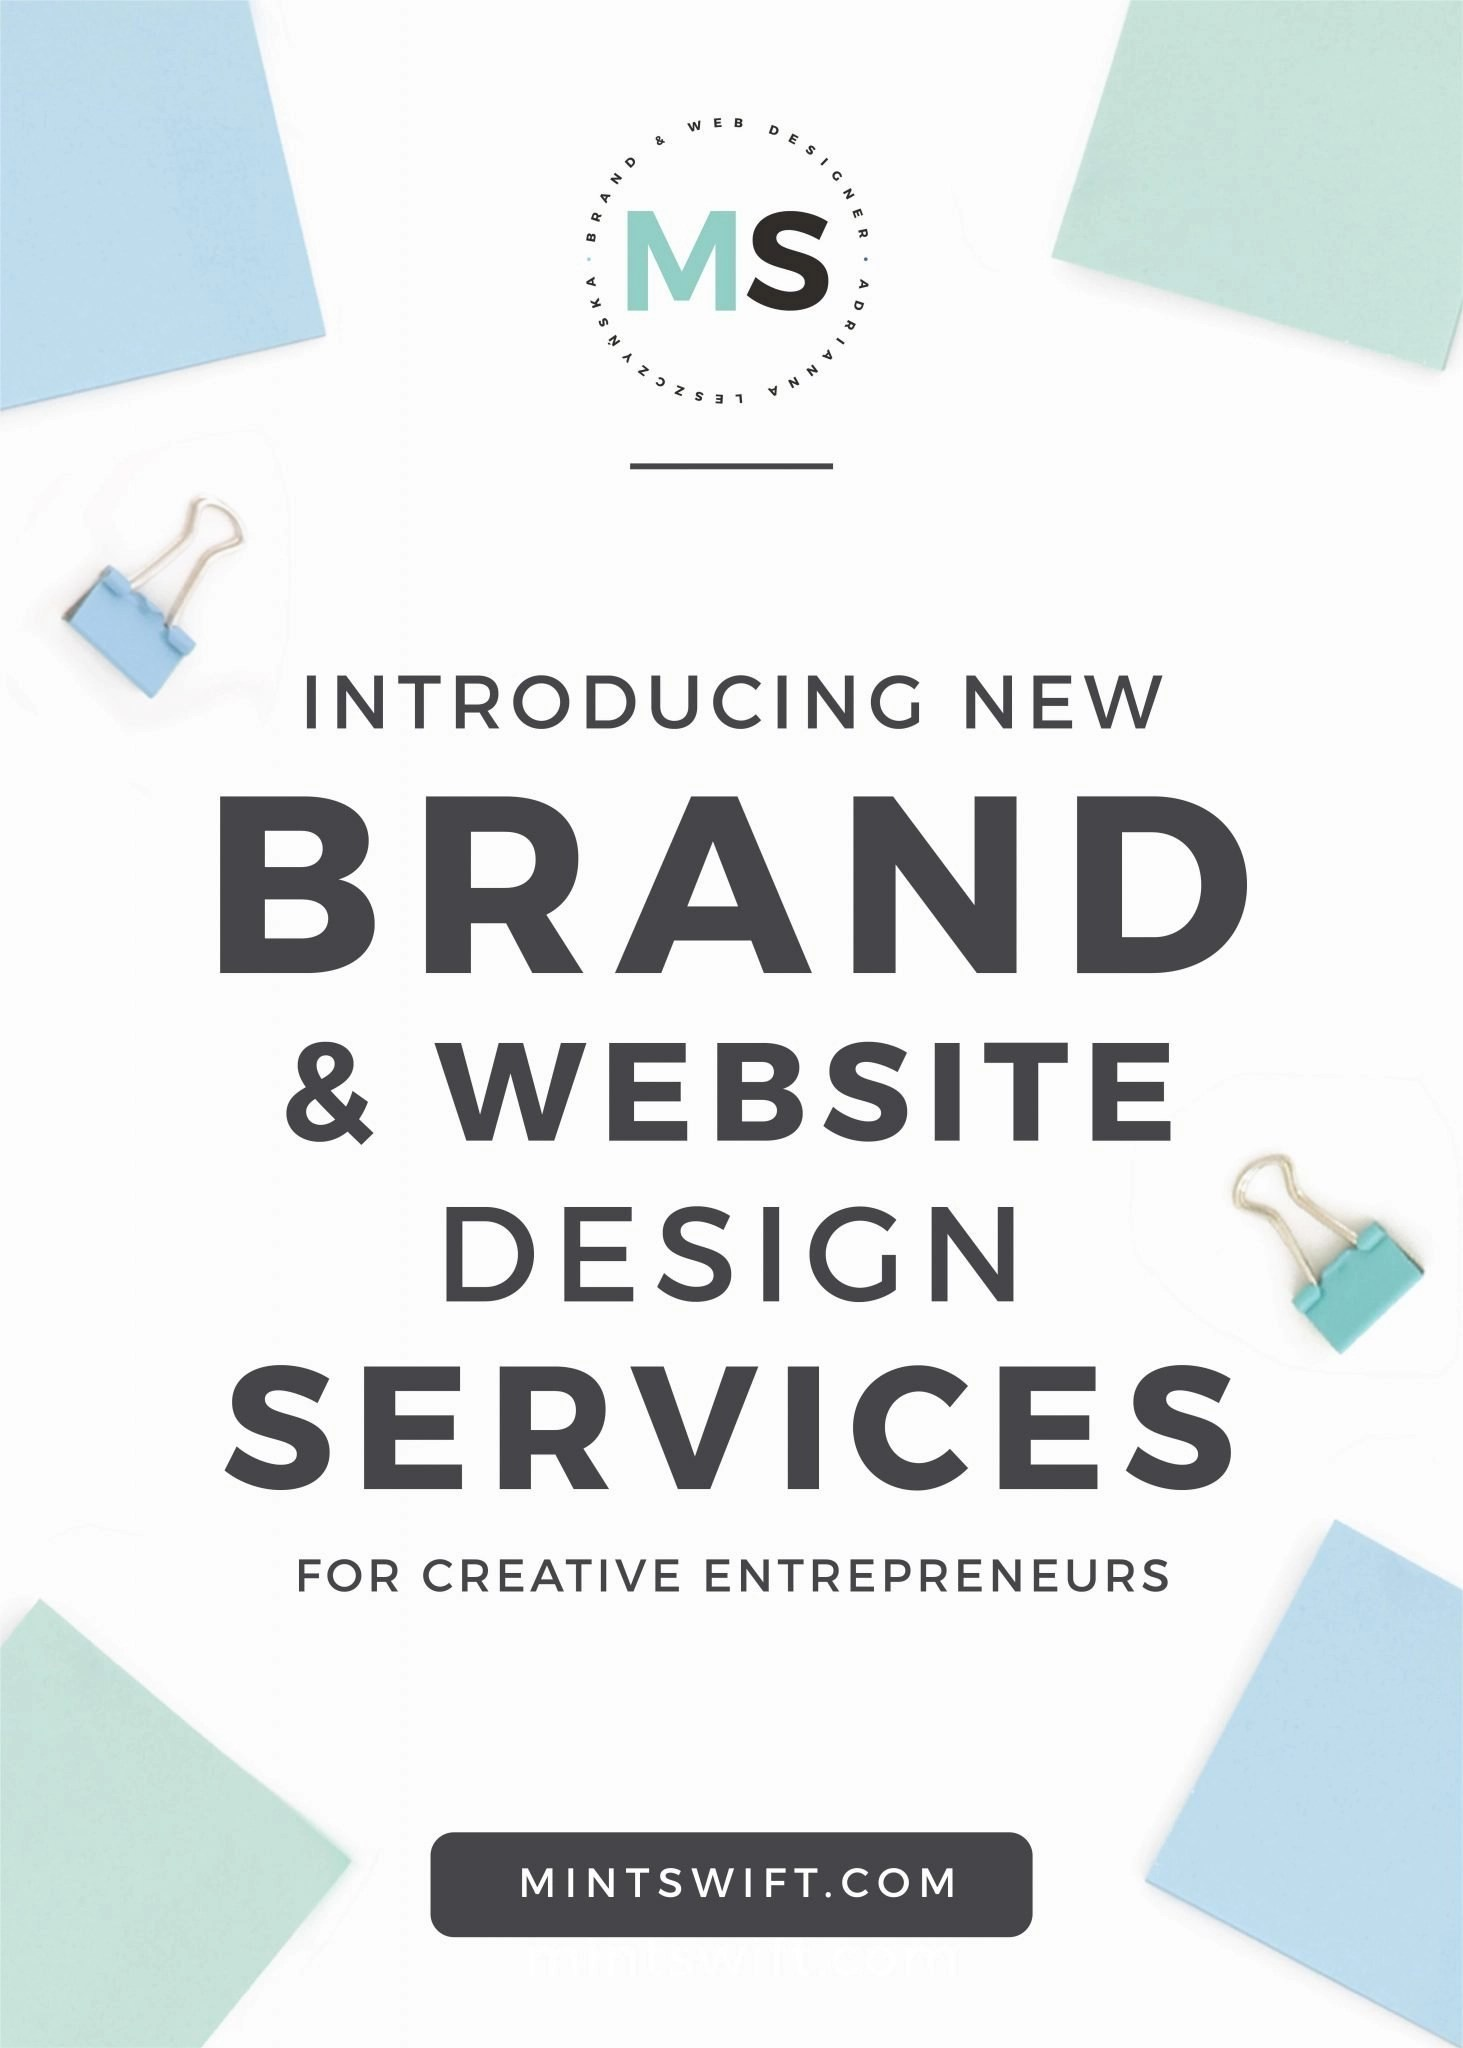 Introducing New Brand & Website Design Services for Creative Entrepreneurs MintSwift - Adrianna Leszczynska